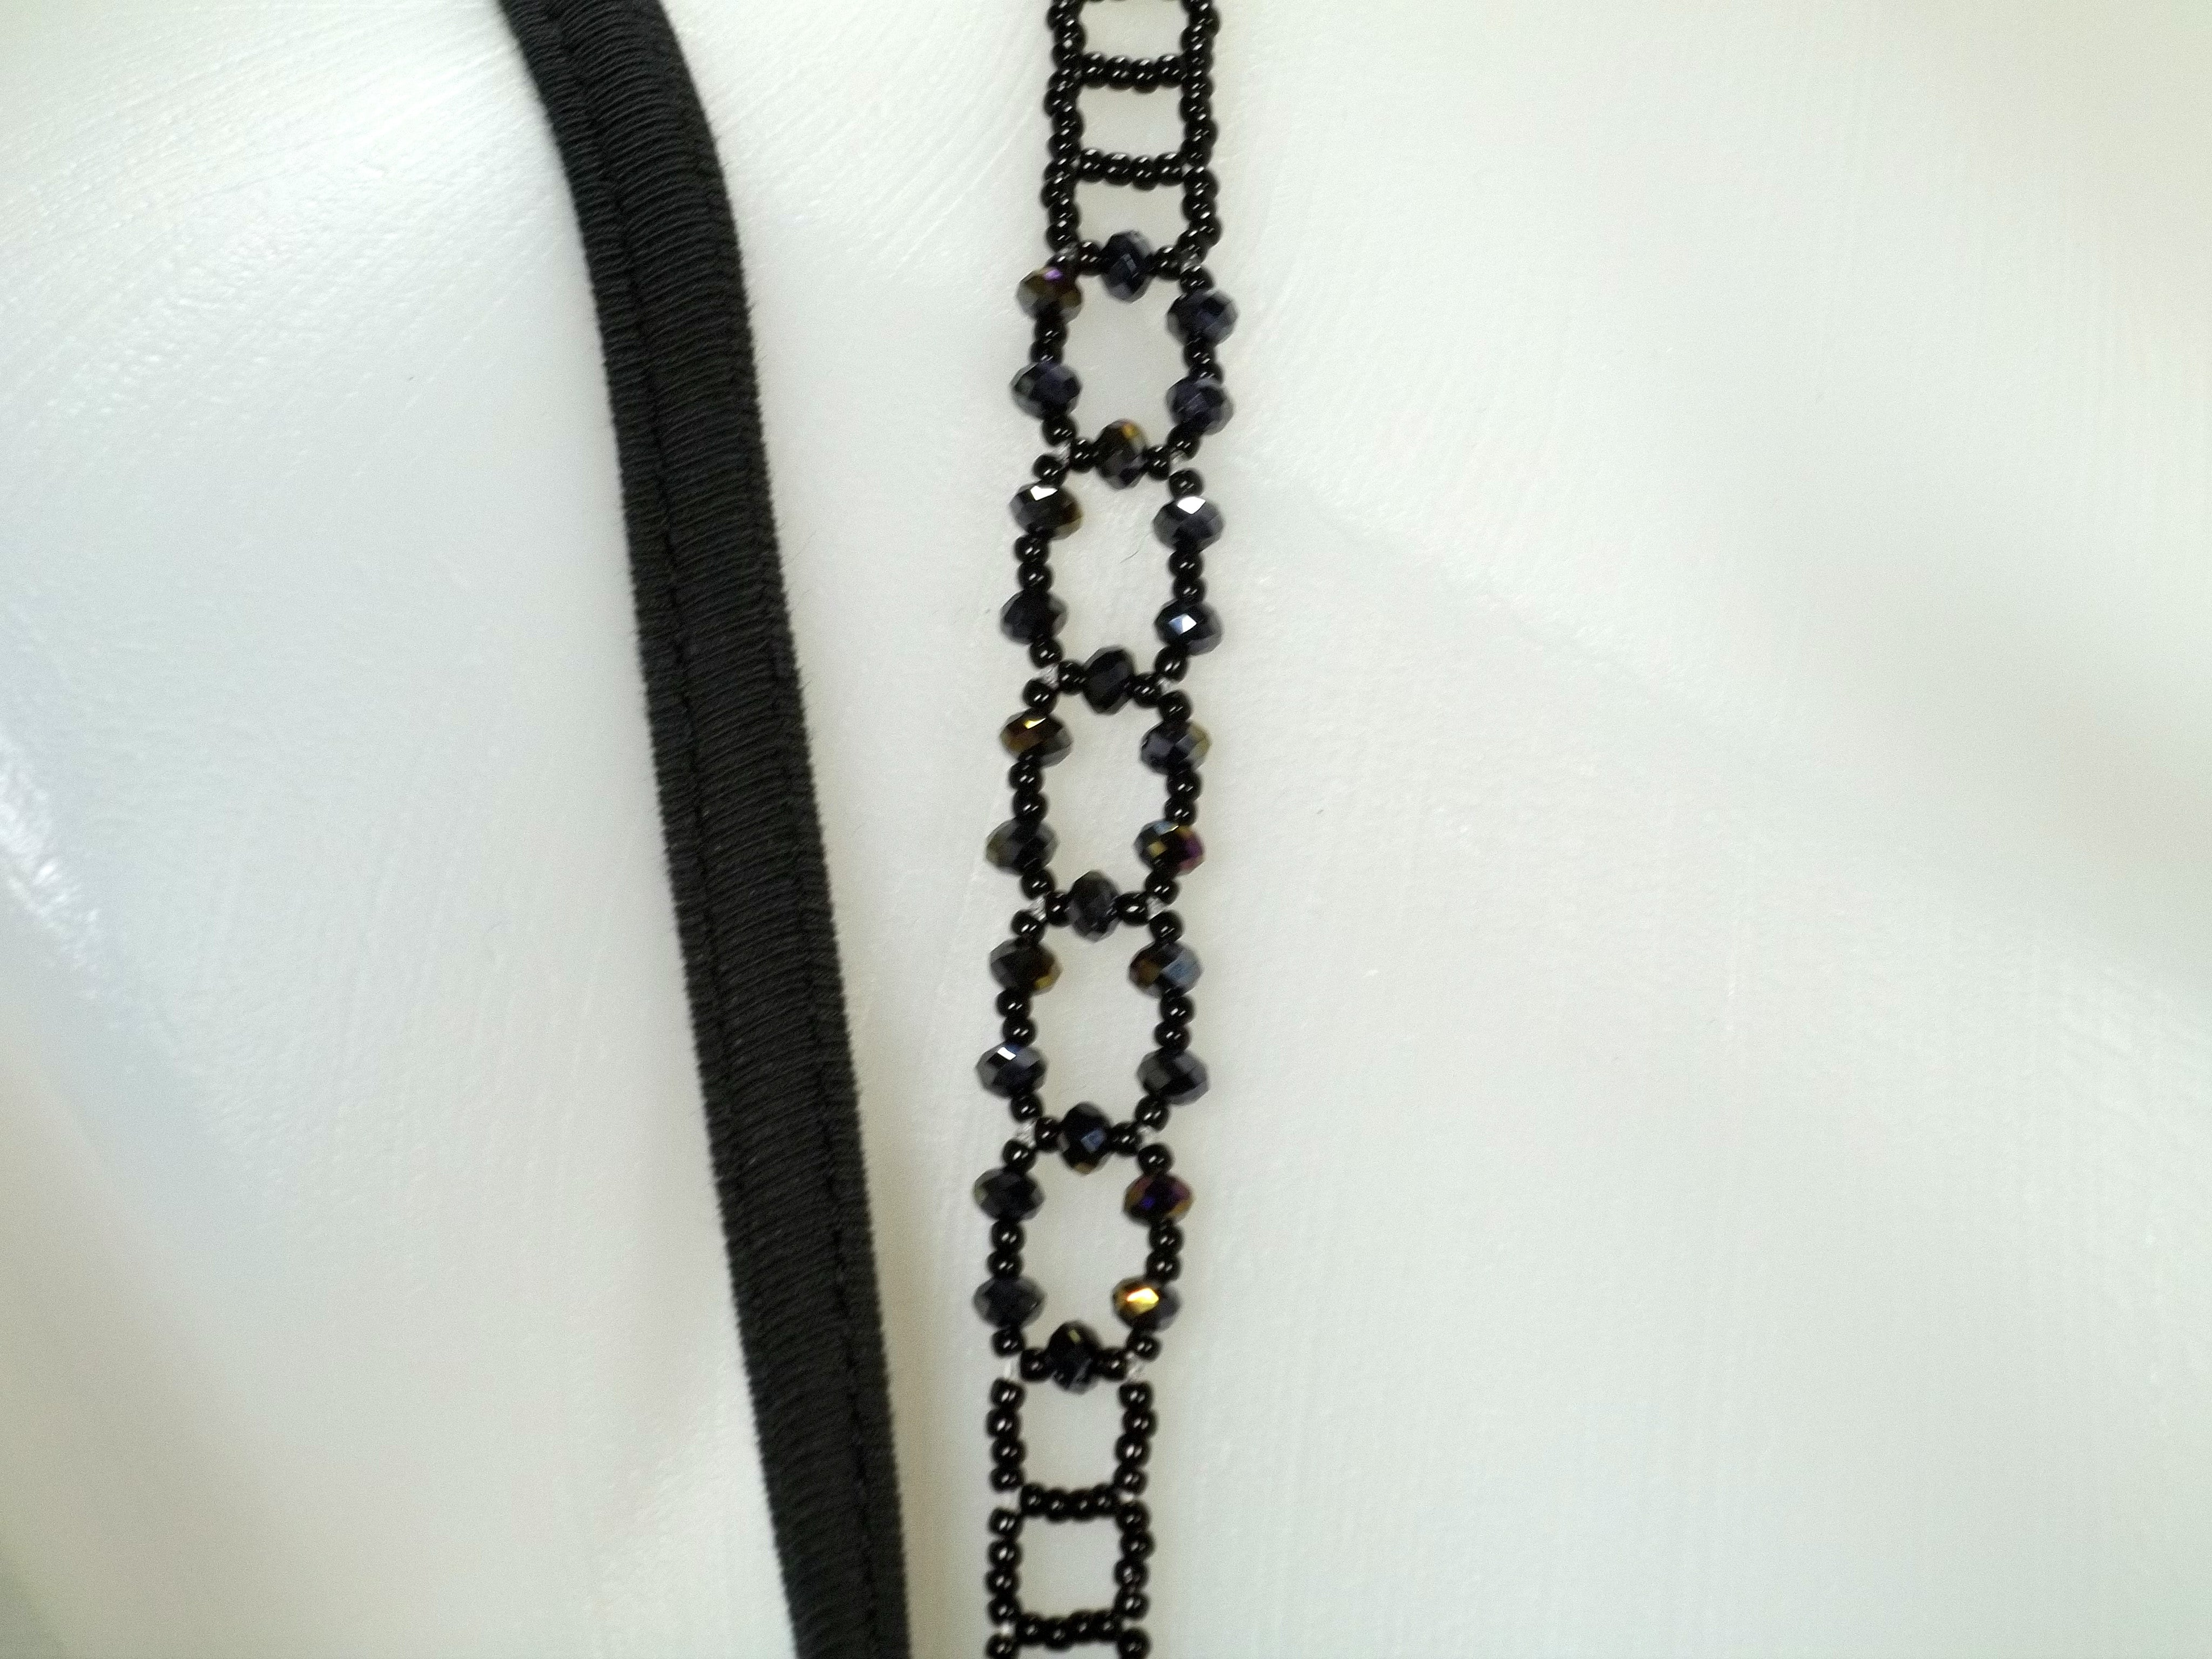 Swarovski Jet Adjustable Beaded Bra Straps DIY Kit